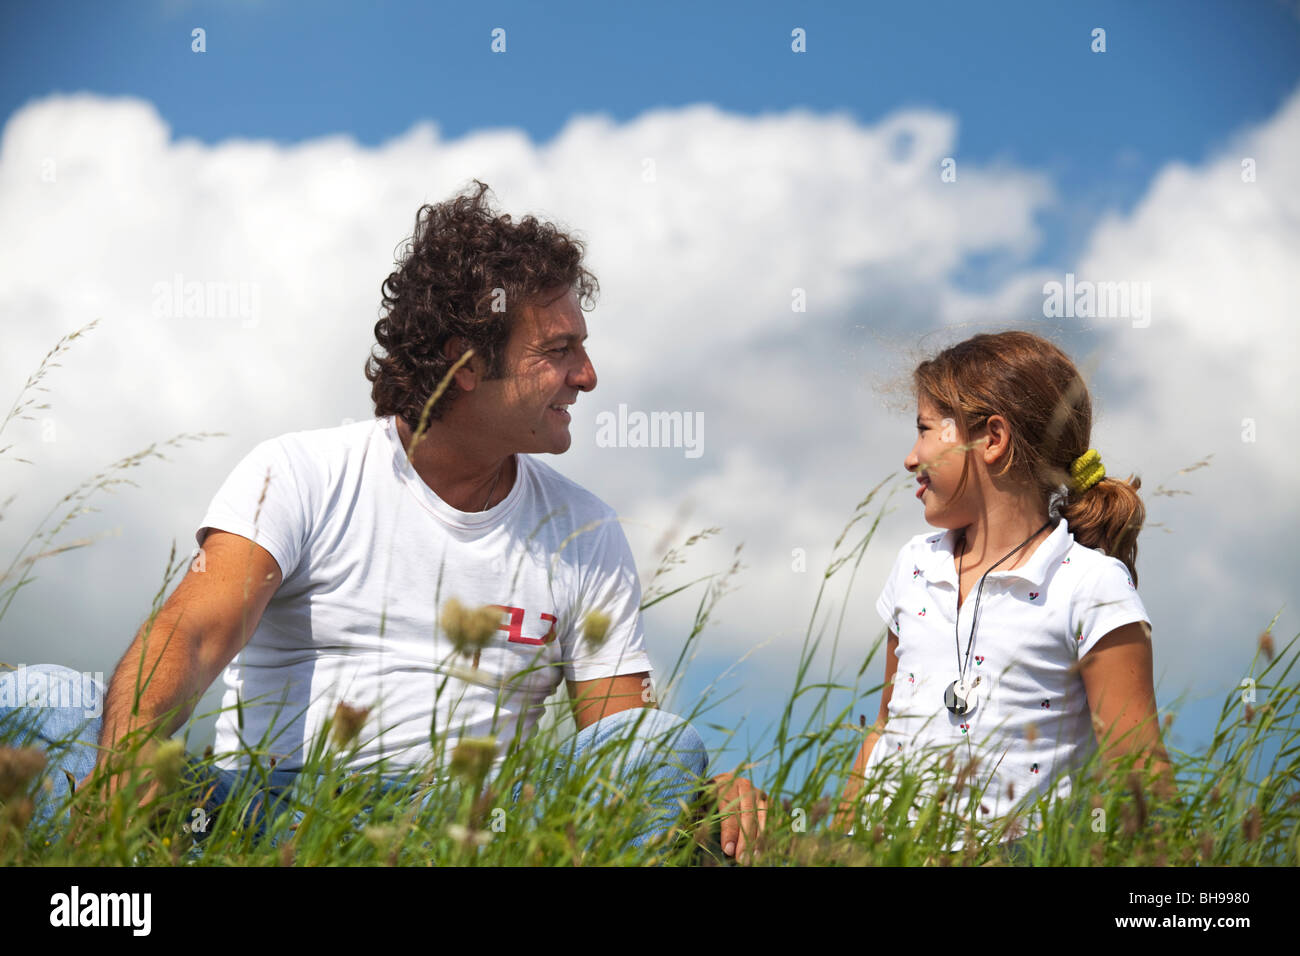 Father and daughter smiling at eachother seated in the grass in a summer day - Stock Image